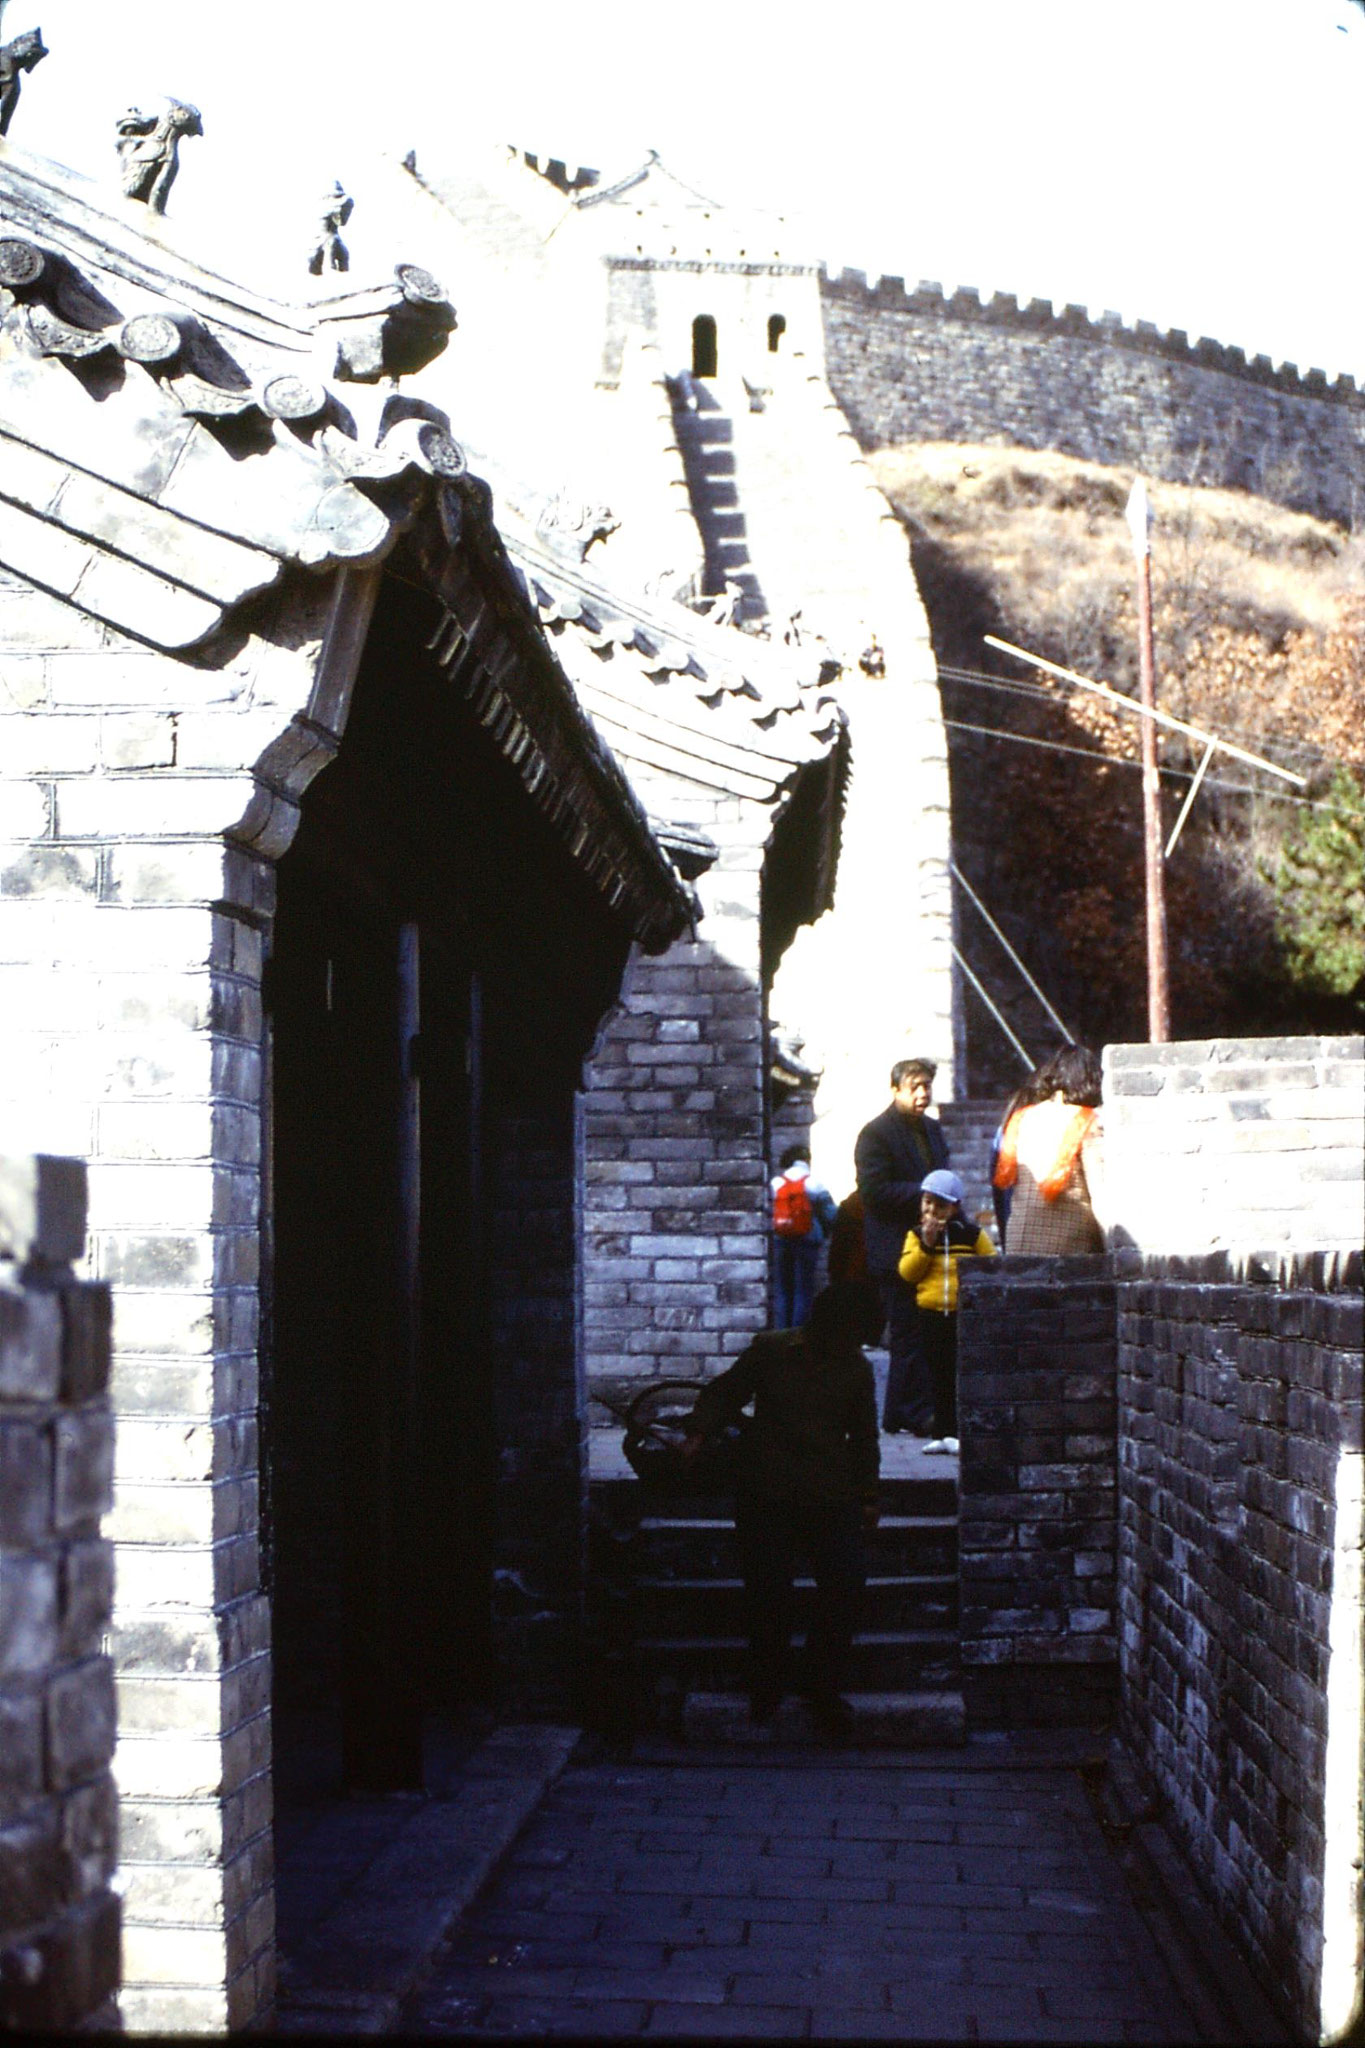 13/11/1988: 24: Great Wall at Mutianyu